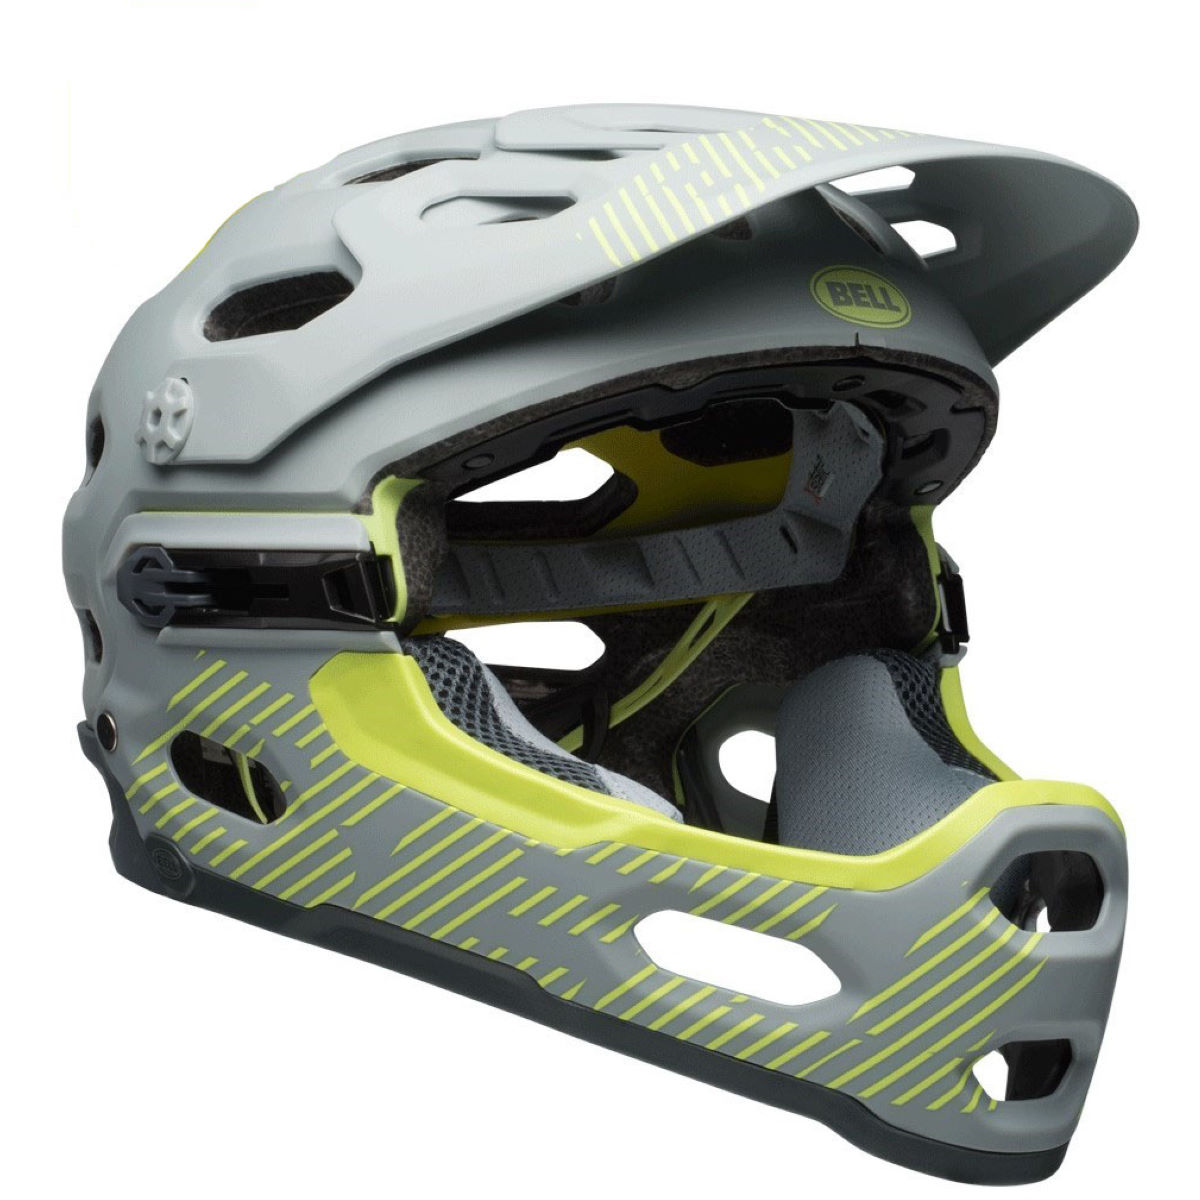 Casque Bell Super 3R MIPS - S Matte Smoke/Pear Casques